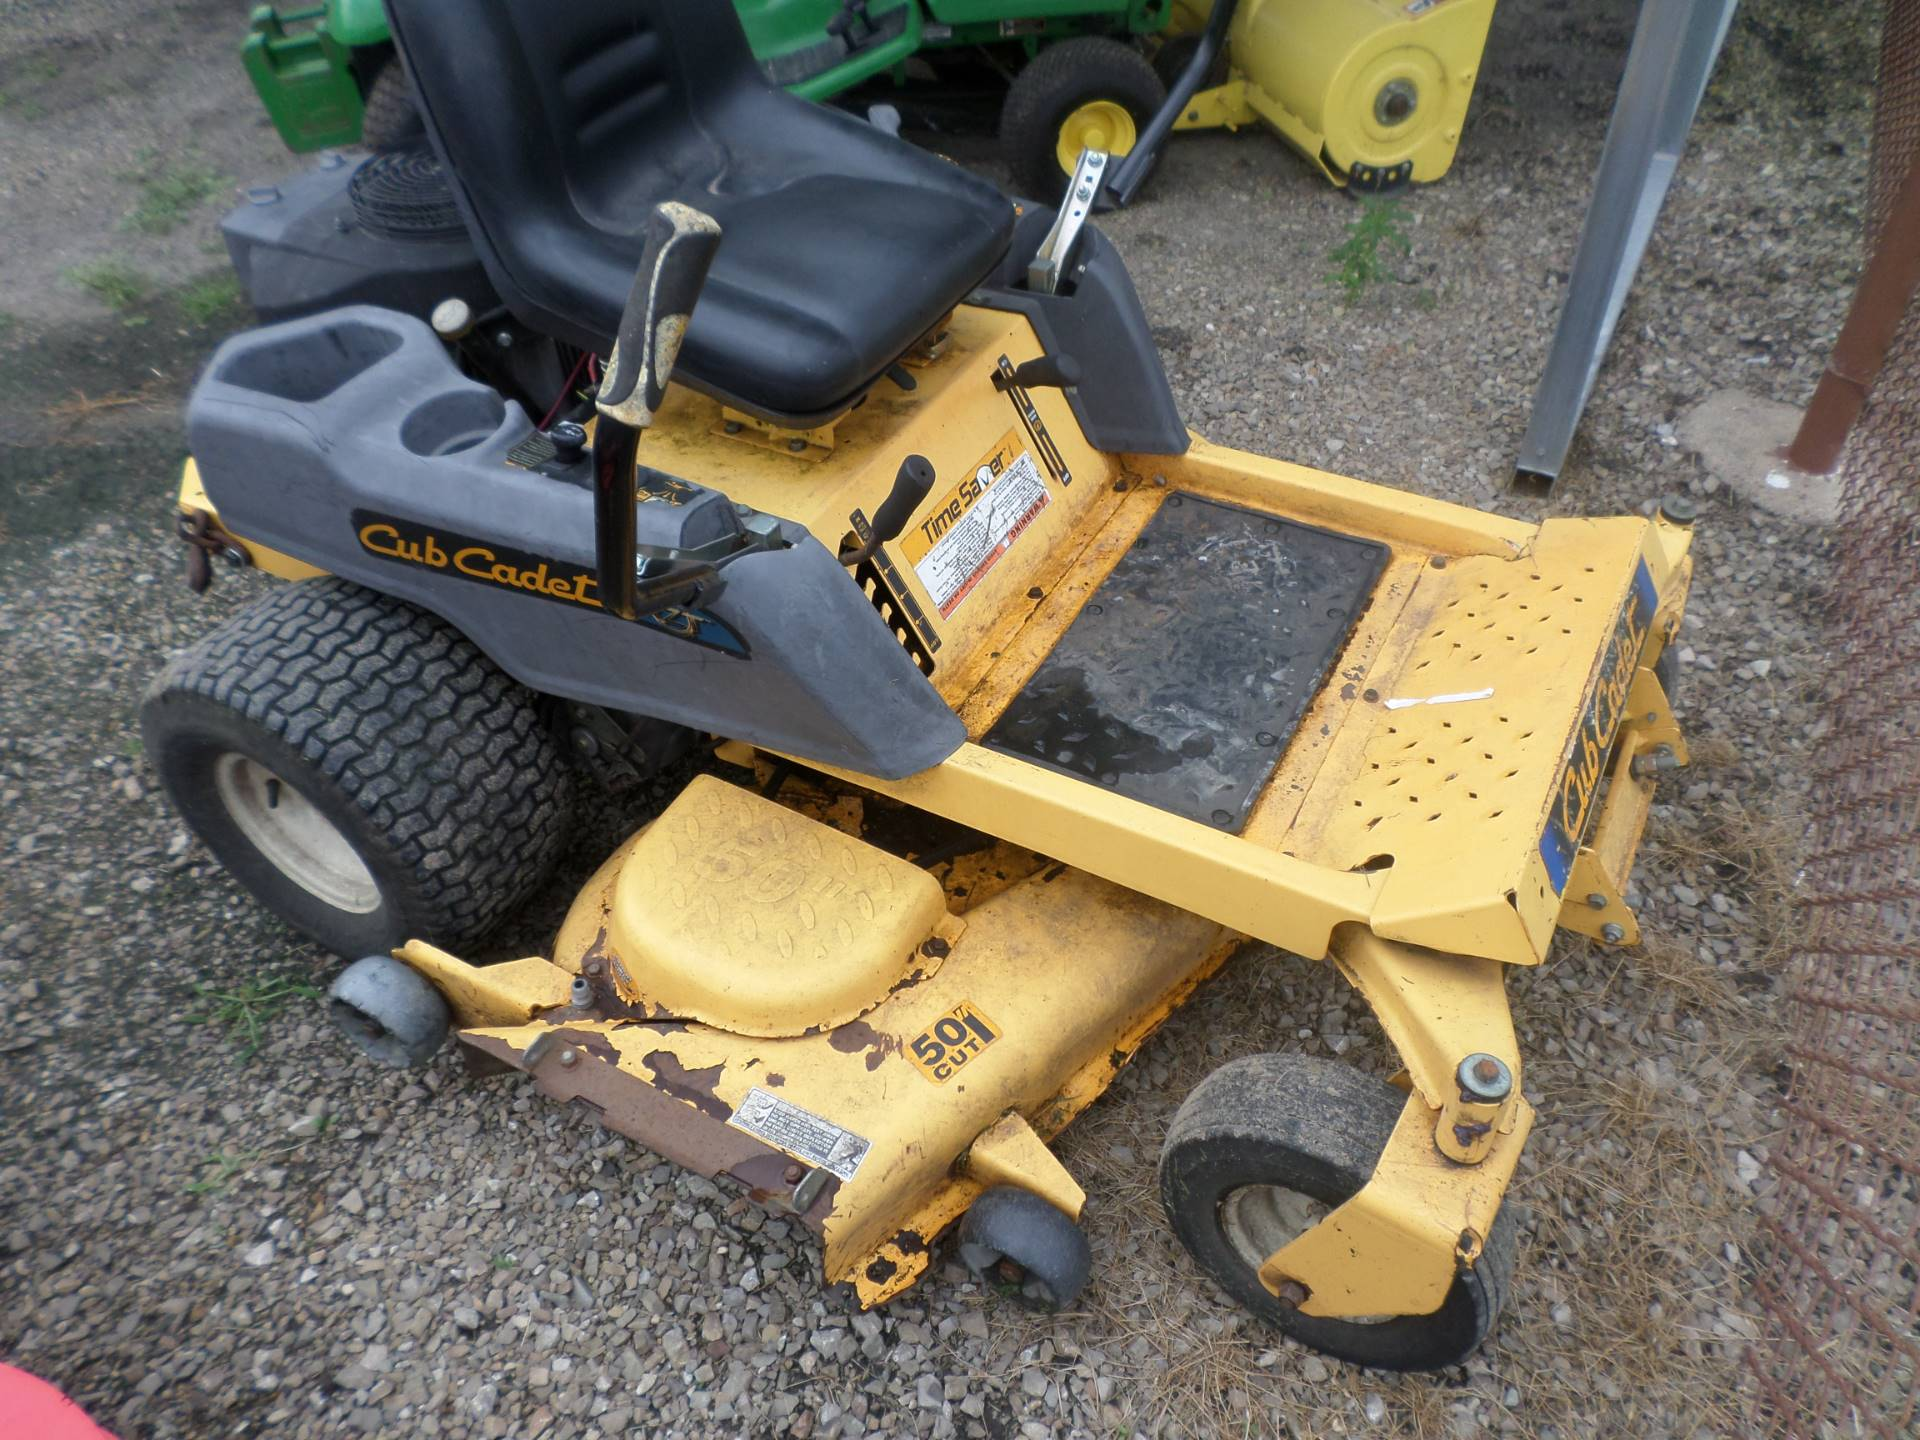 used 2007 cub cadet rzt 50 lawn mowers in lake mills ia stock number 0120. Black Bedroom Furniture Sets. Home Design Ideas